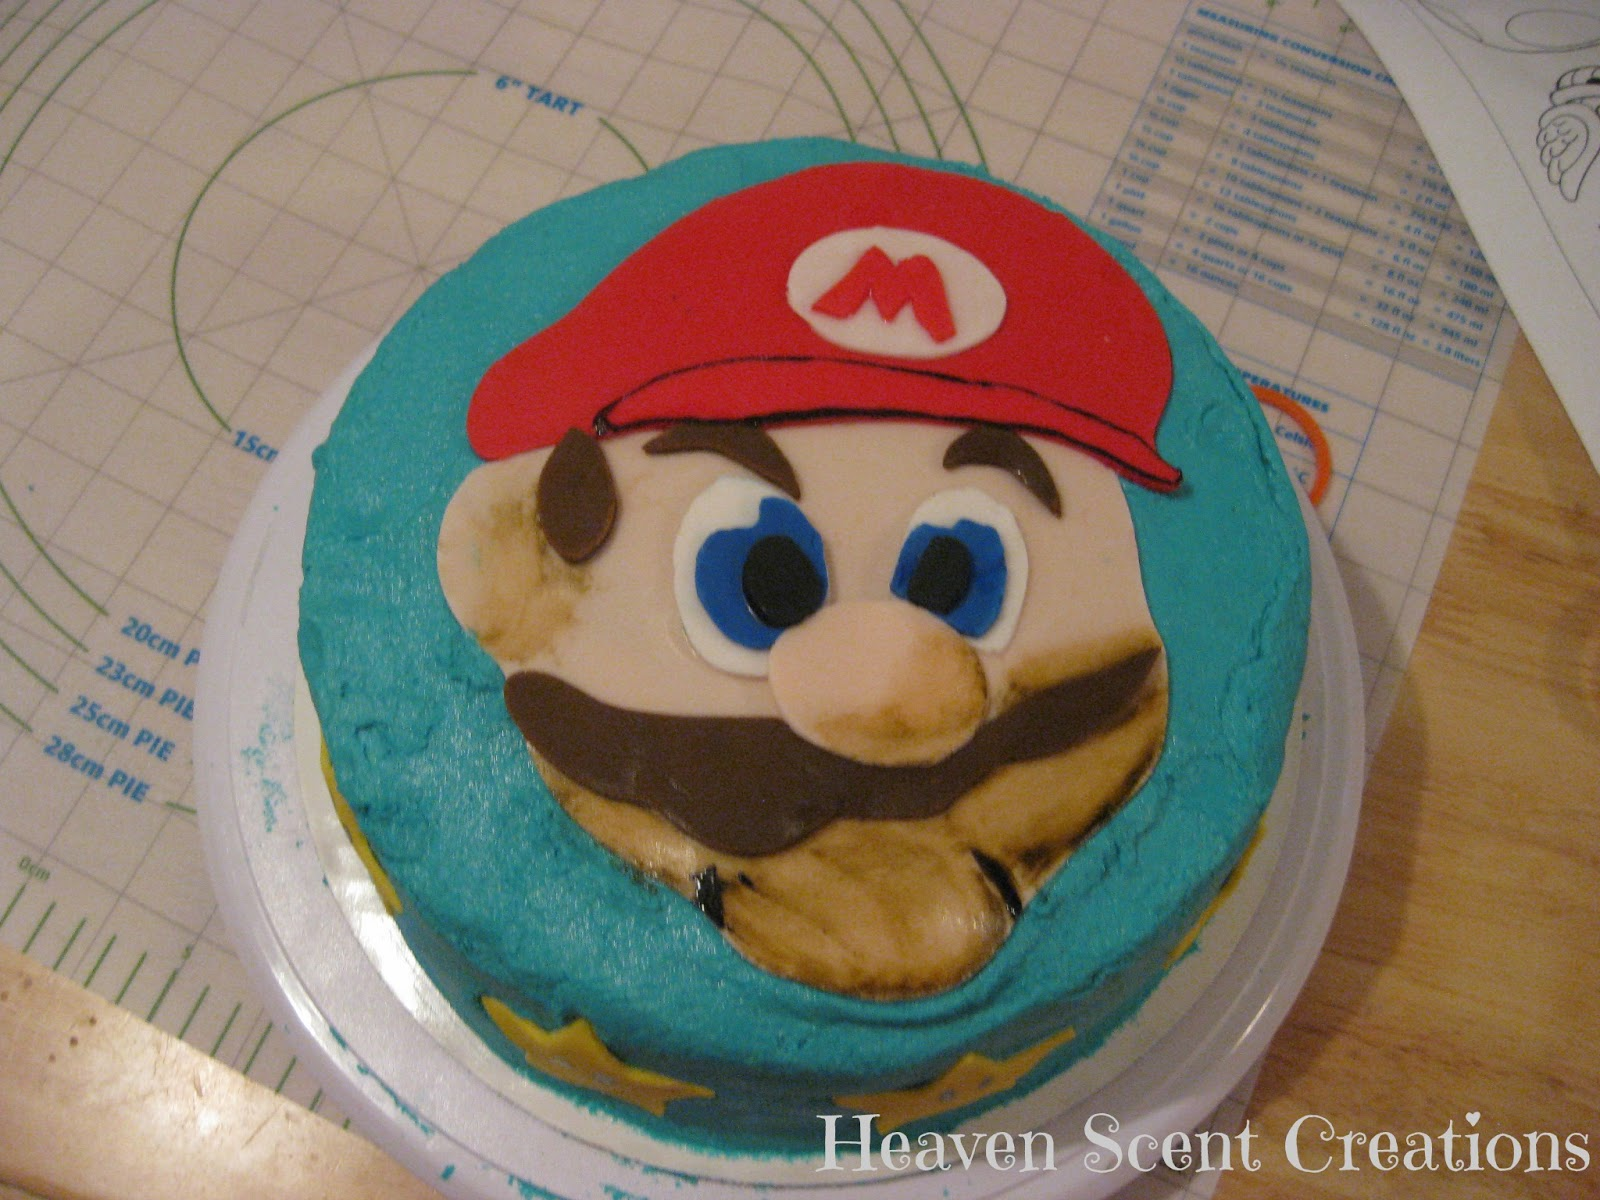 Heaven Scent Creations Super Mario Bros Cake